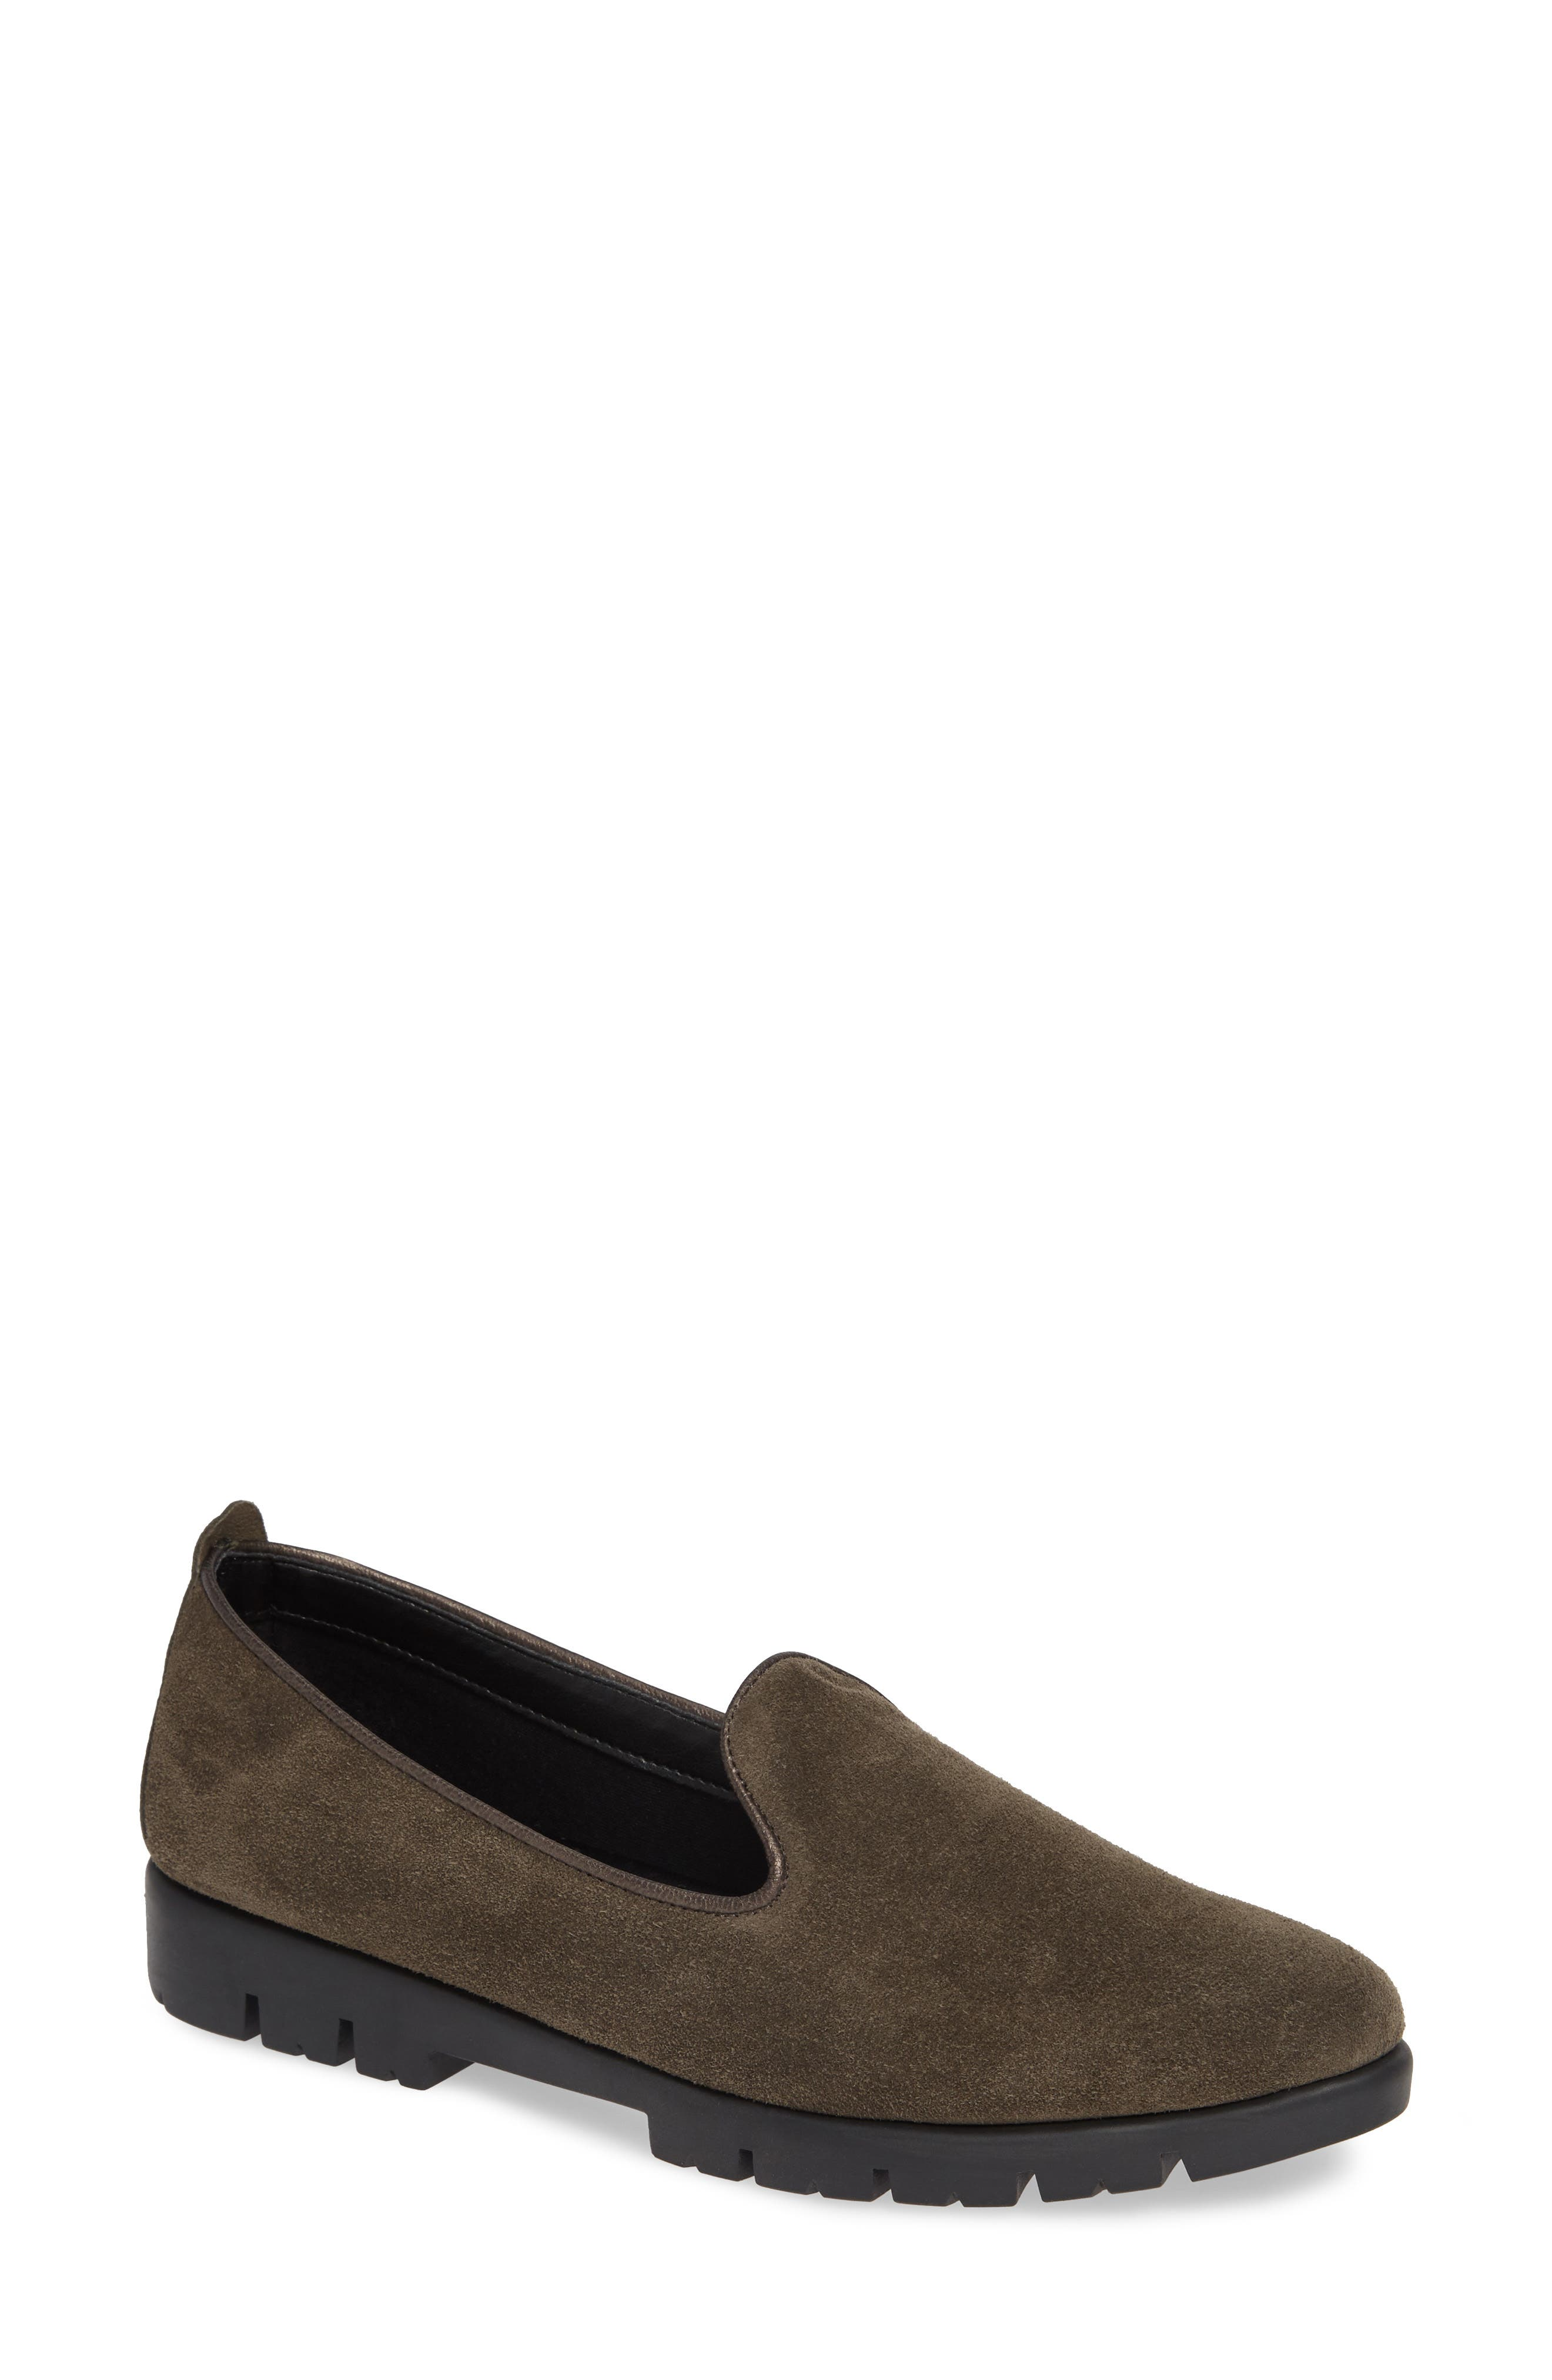 THE FLEXX, Smokin' Hot Plush Loafer, Main thumbnail 1, color, BROWN SUEDE